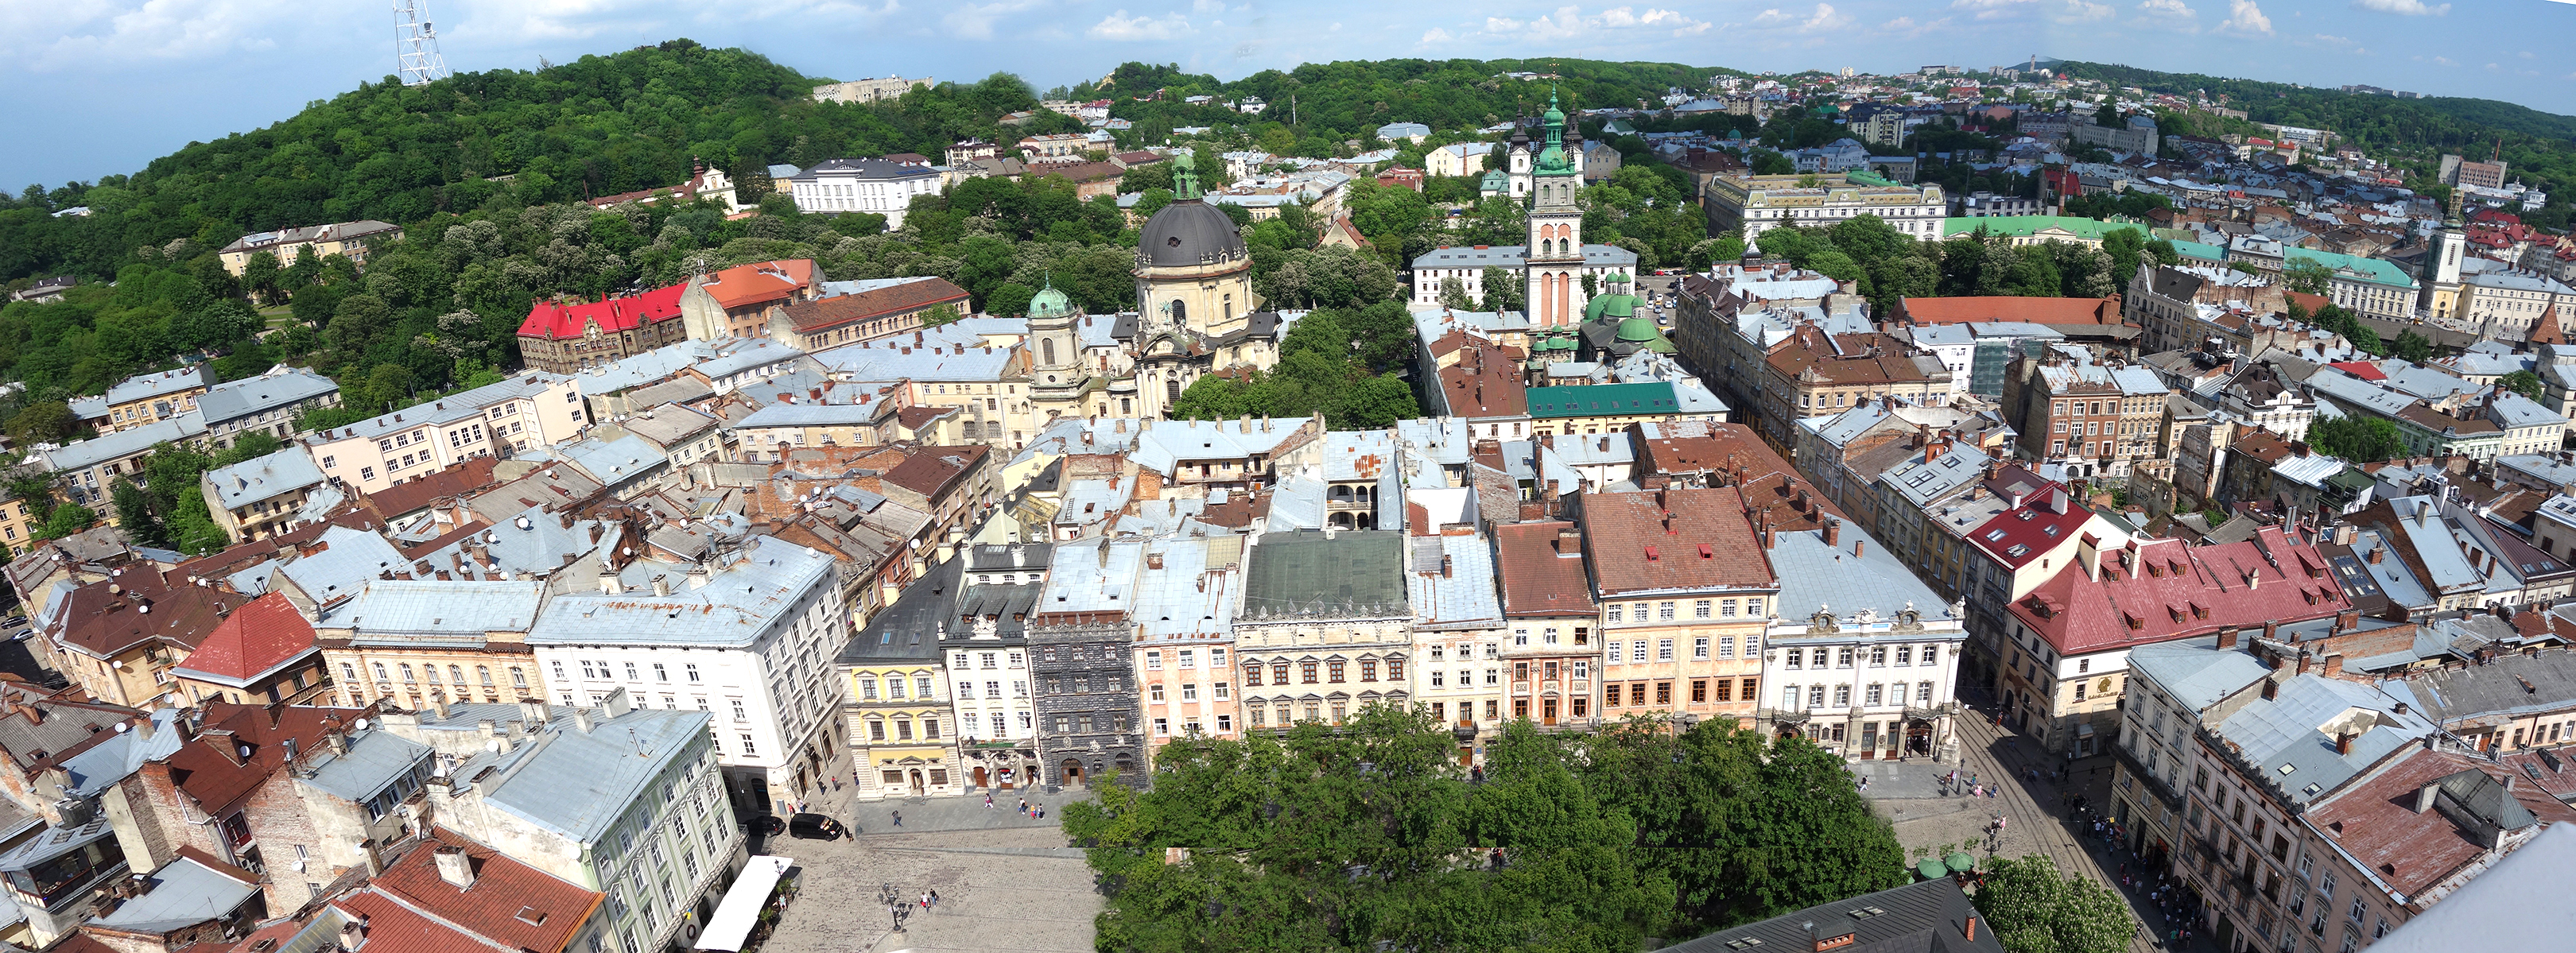 Lviv looking east